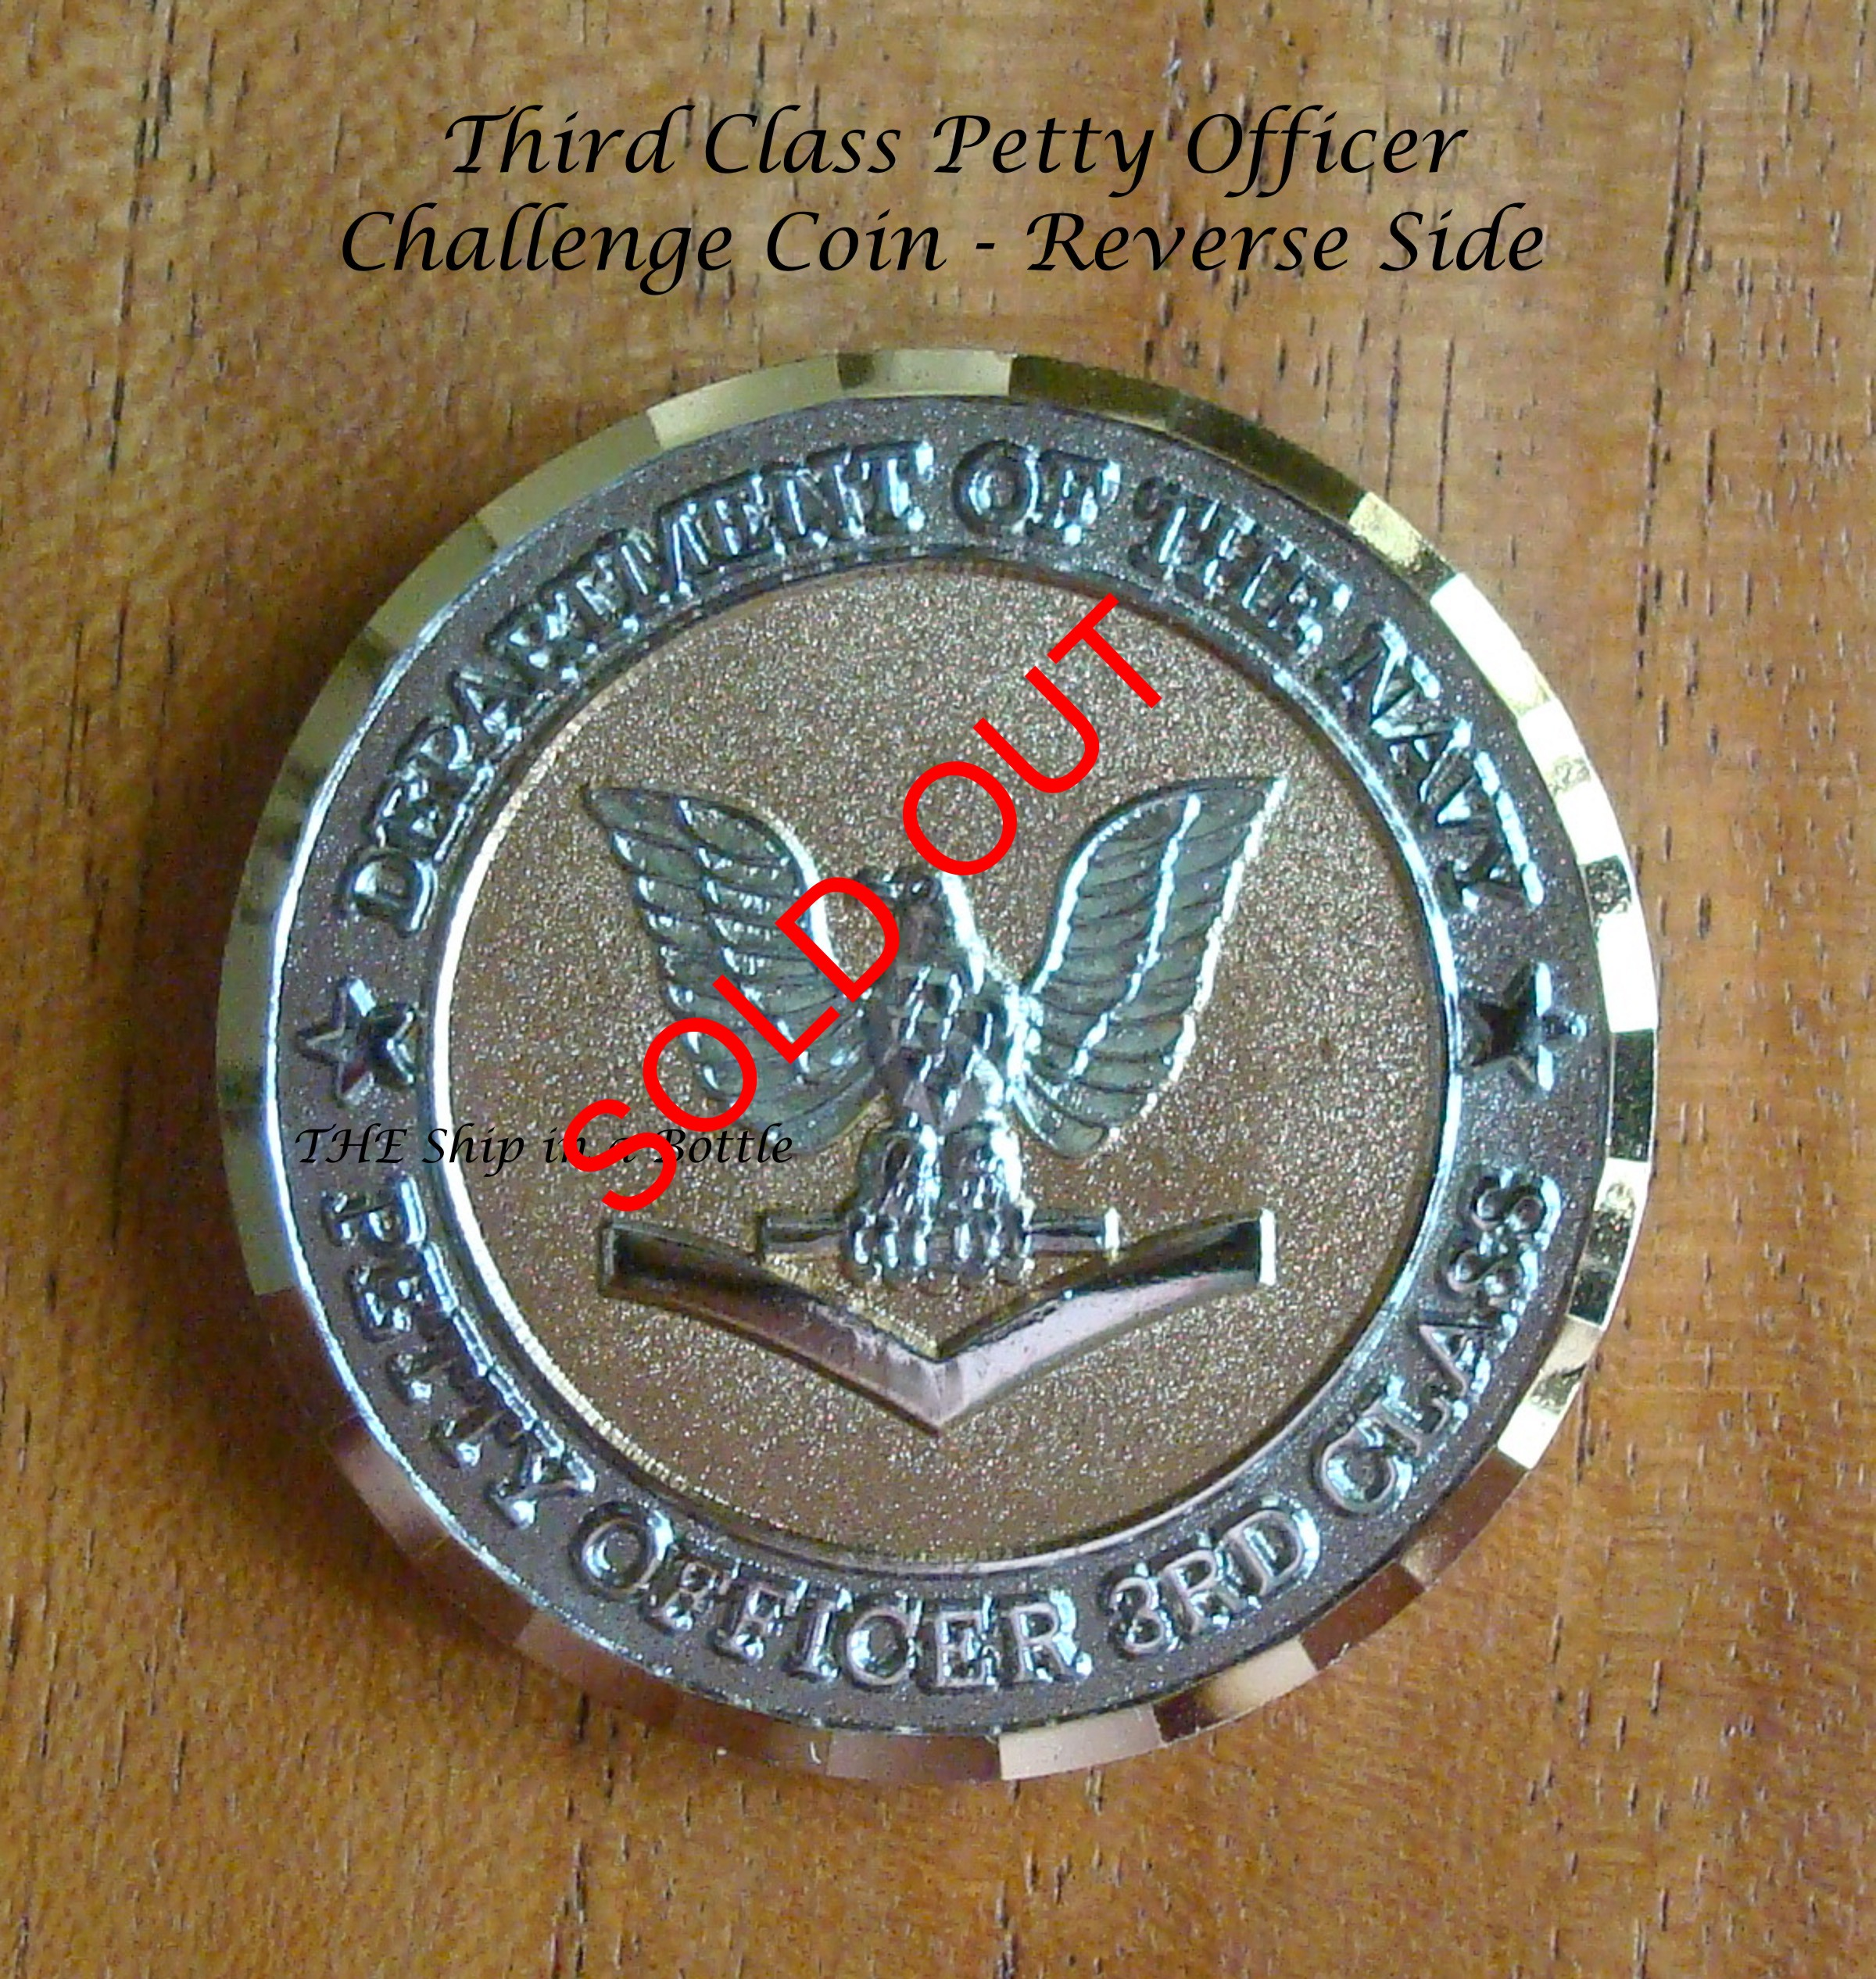 US Navy Challenge Coin - 3rd Class PO